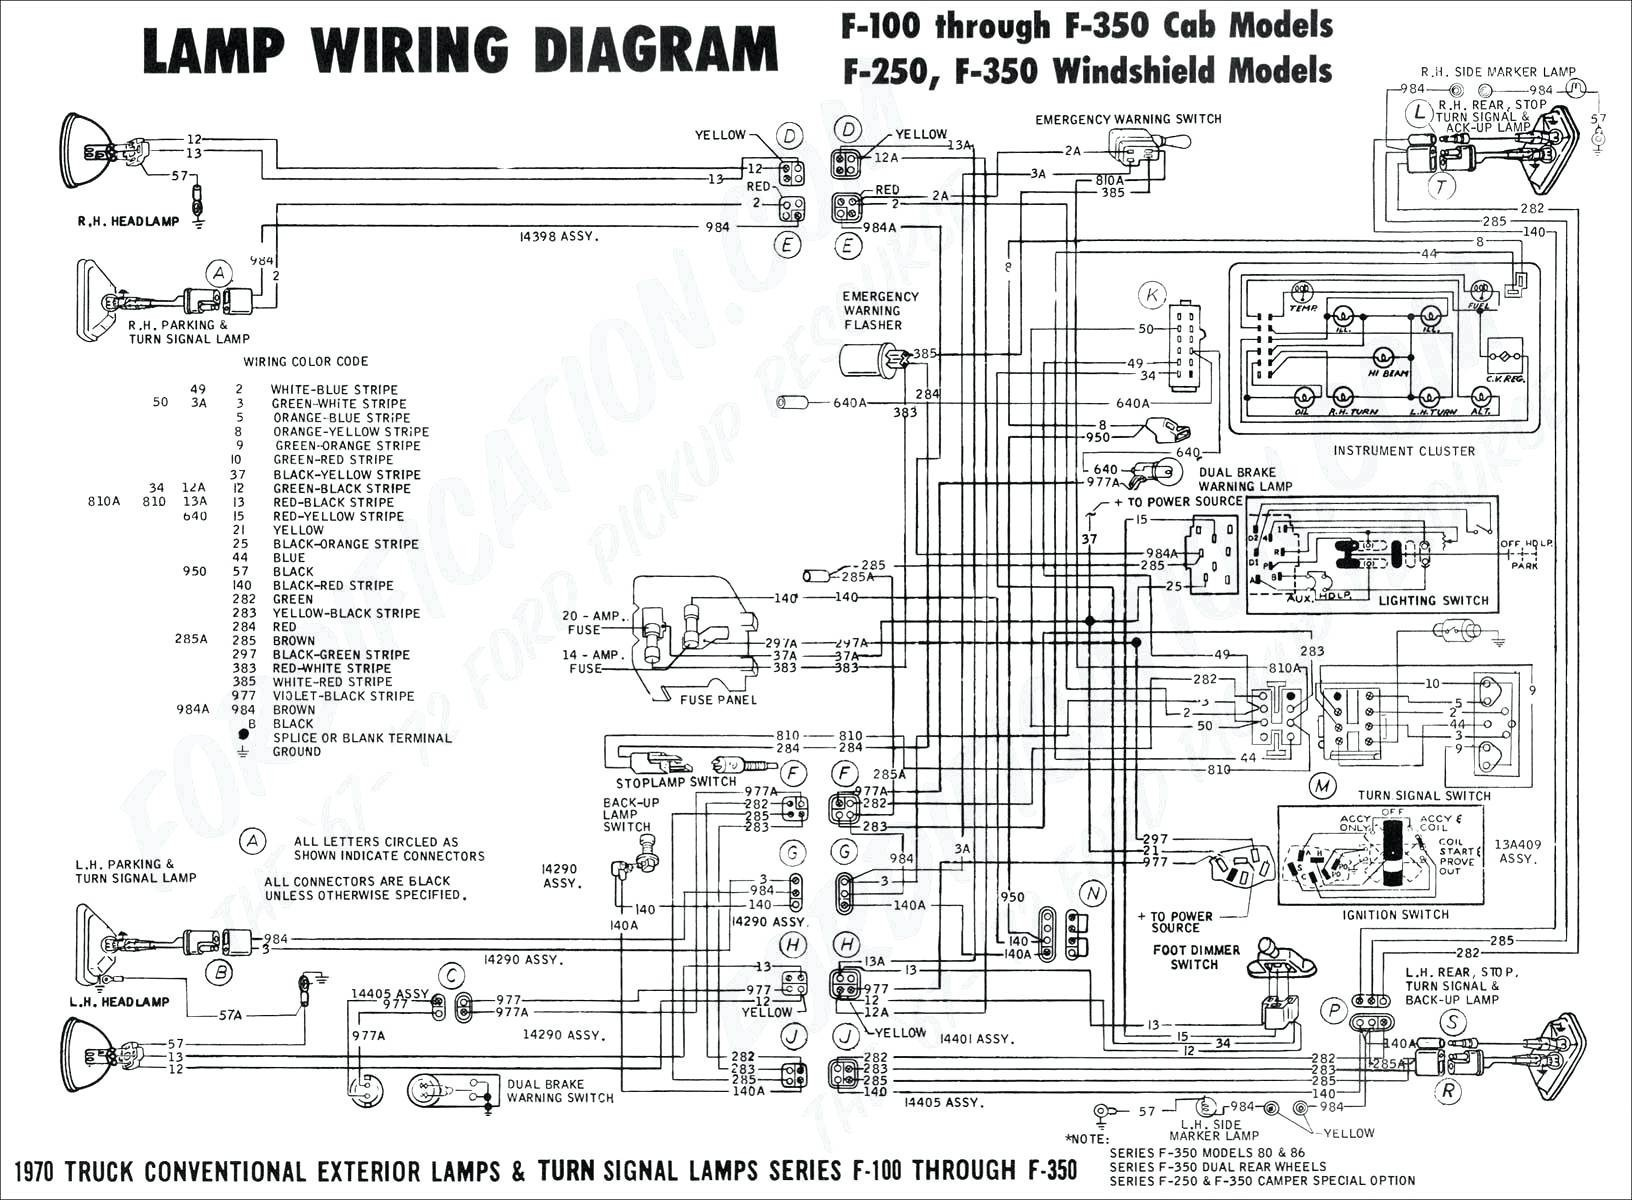 Trailer Light Wiring Diagram 4 Wire | My Wiring DIagram on